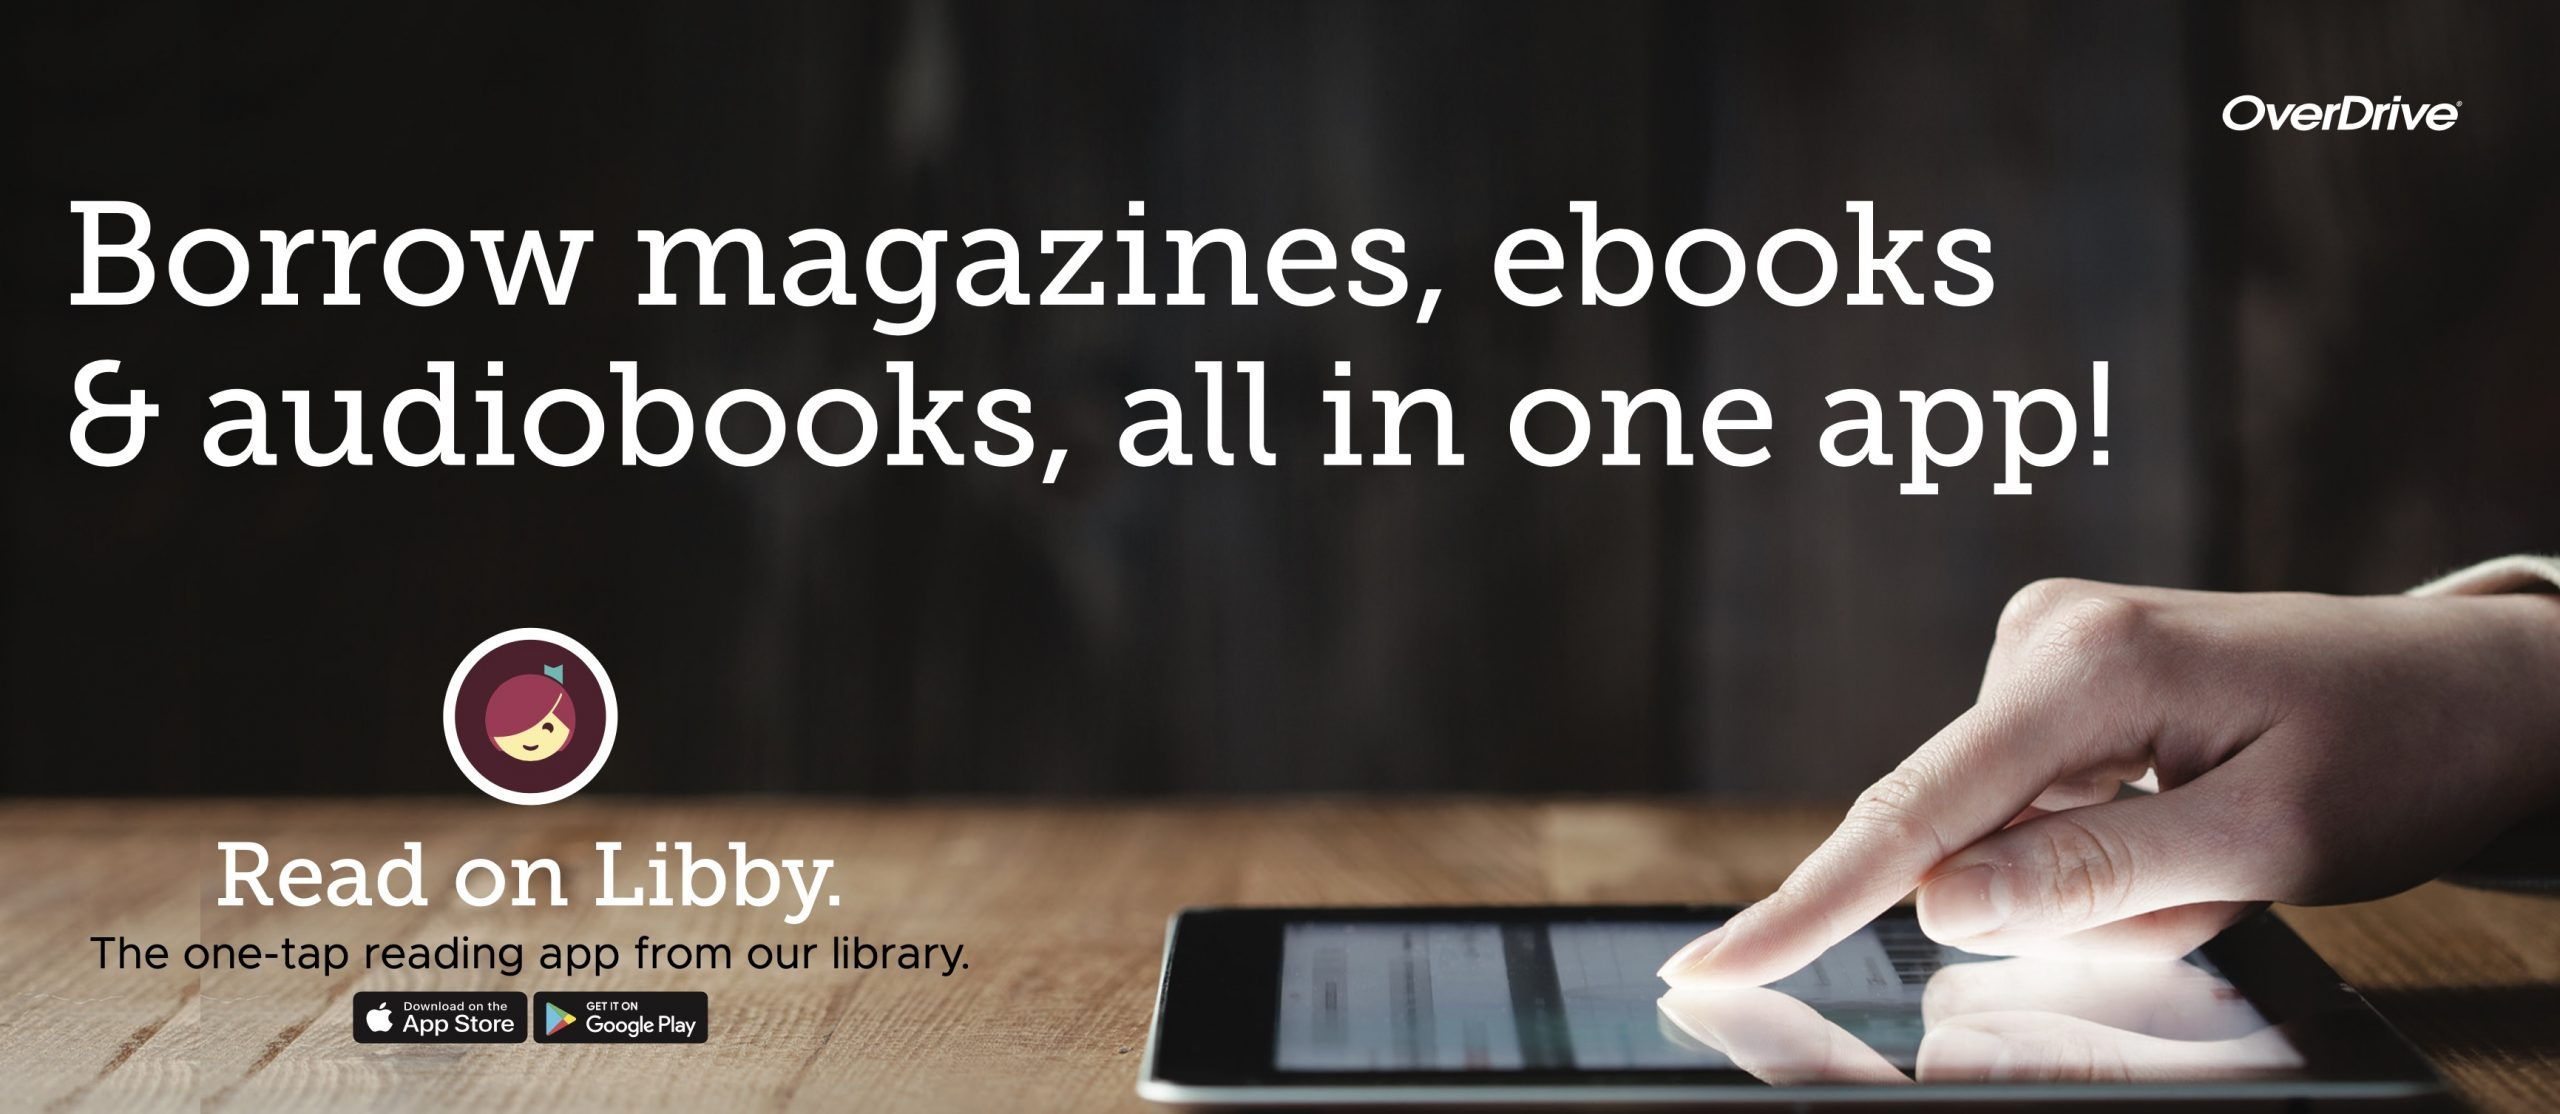 Borrow magazines, ebooks, and audiobooks, all in one app with Libby!